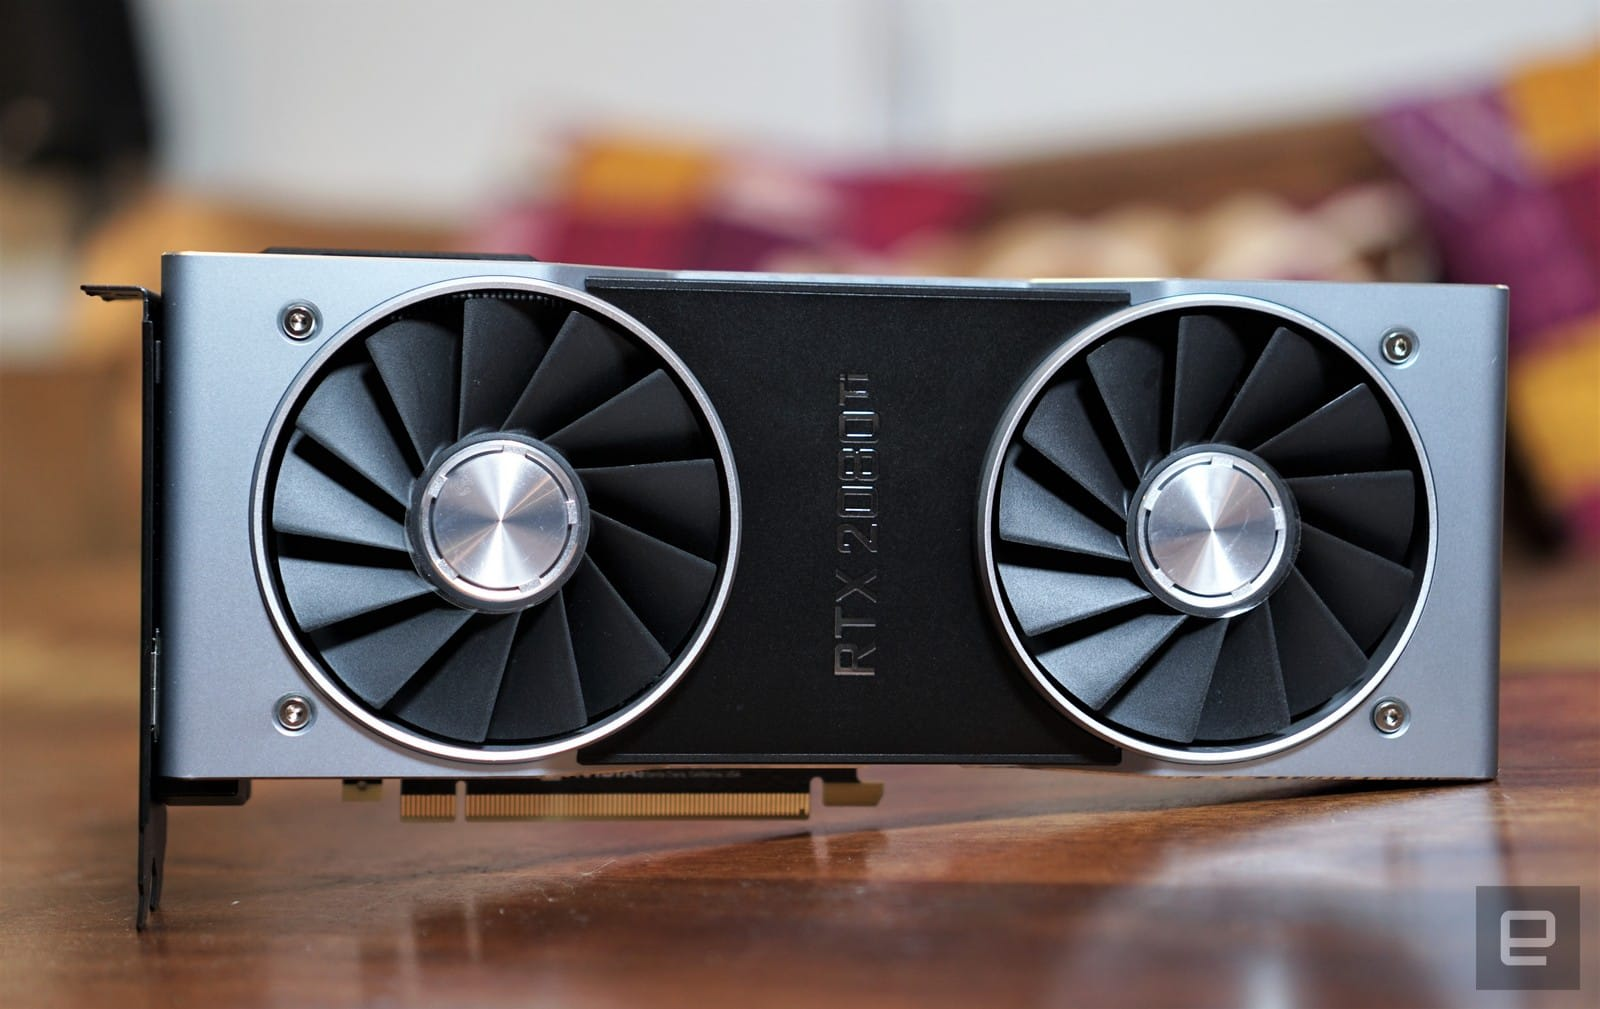 NVIDIA RTX 2080 and 2080 Ti review: To 4K 60 FPS, and beyond